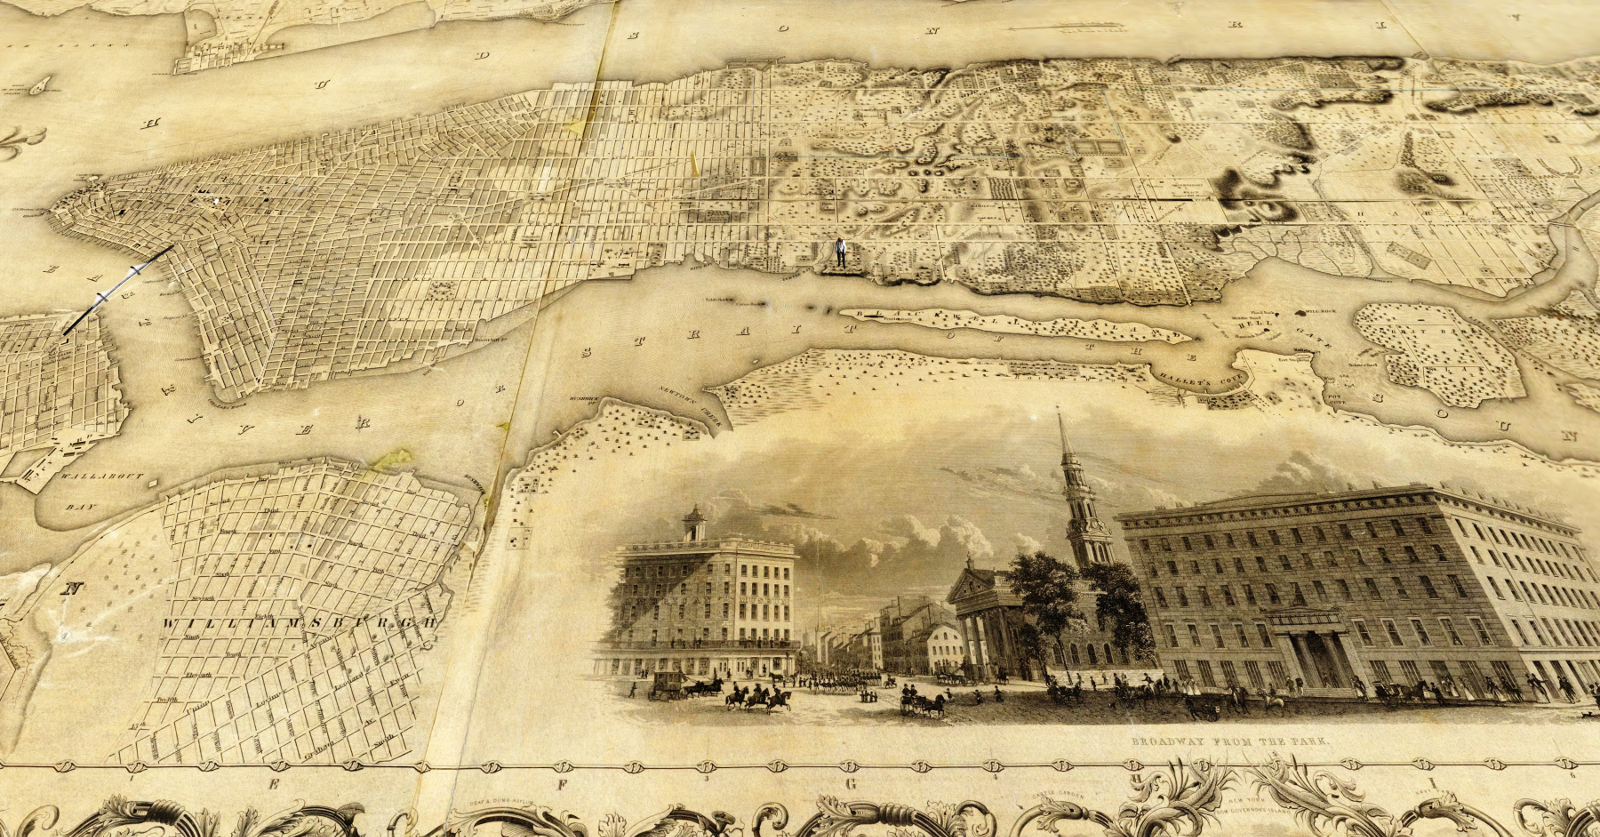 A 19th century map of New York City by J.H. Colton, on which visitors can walk